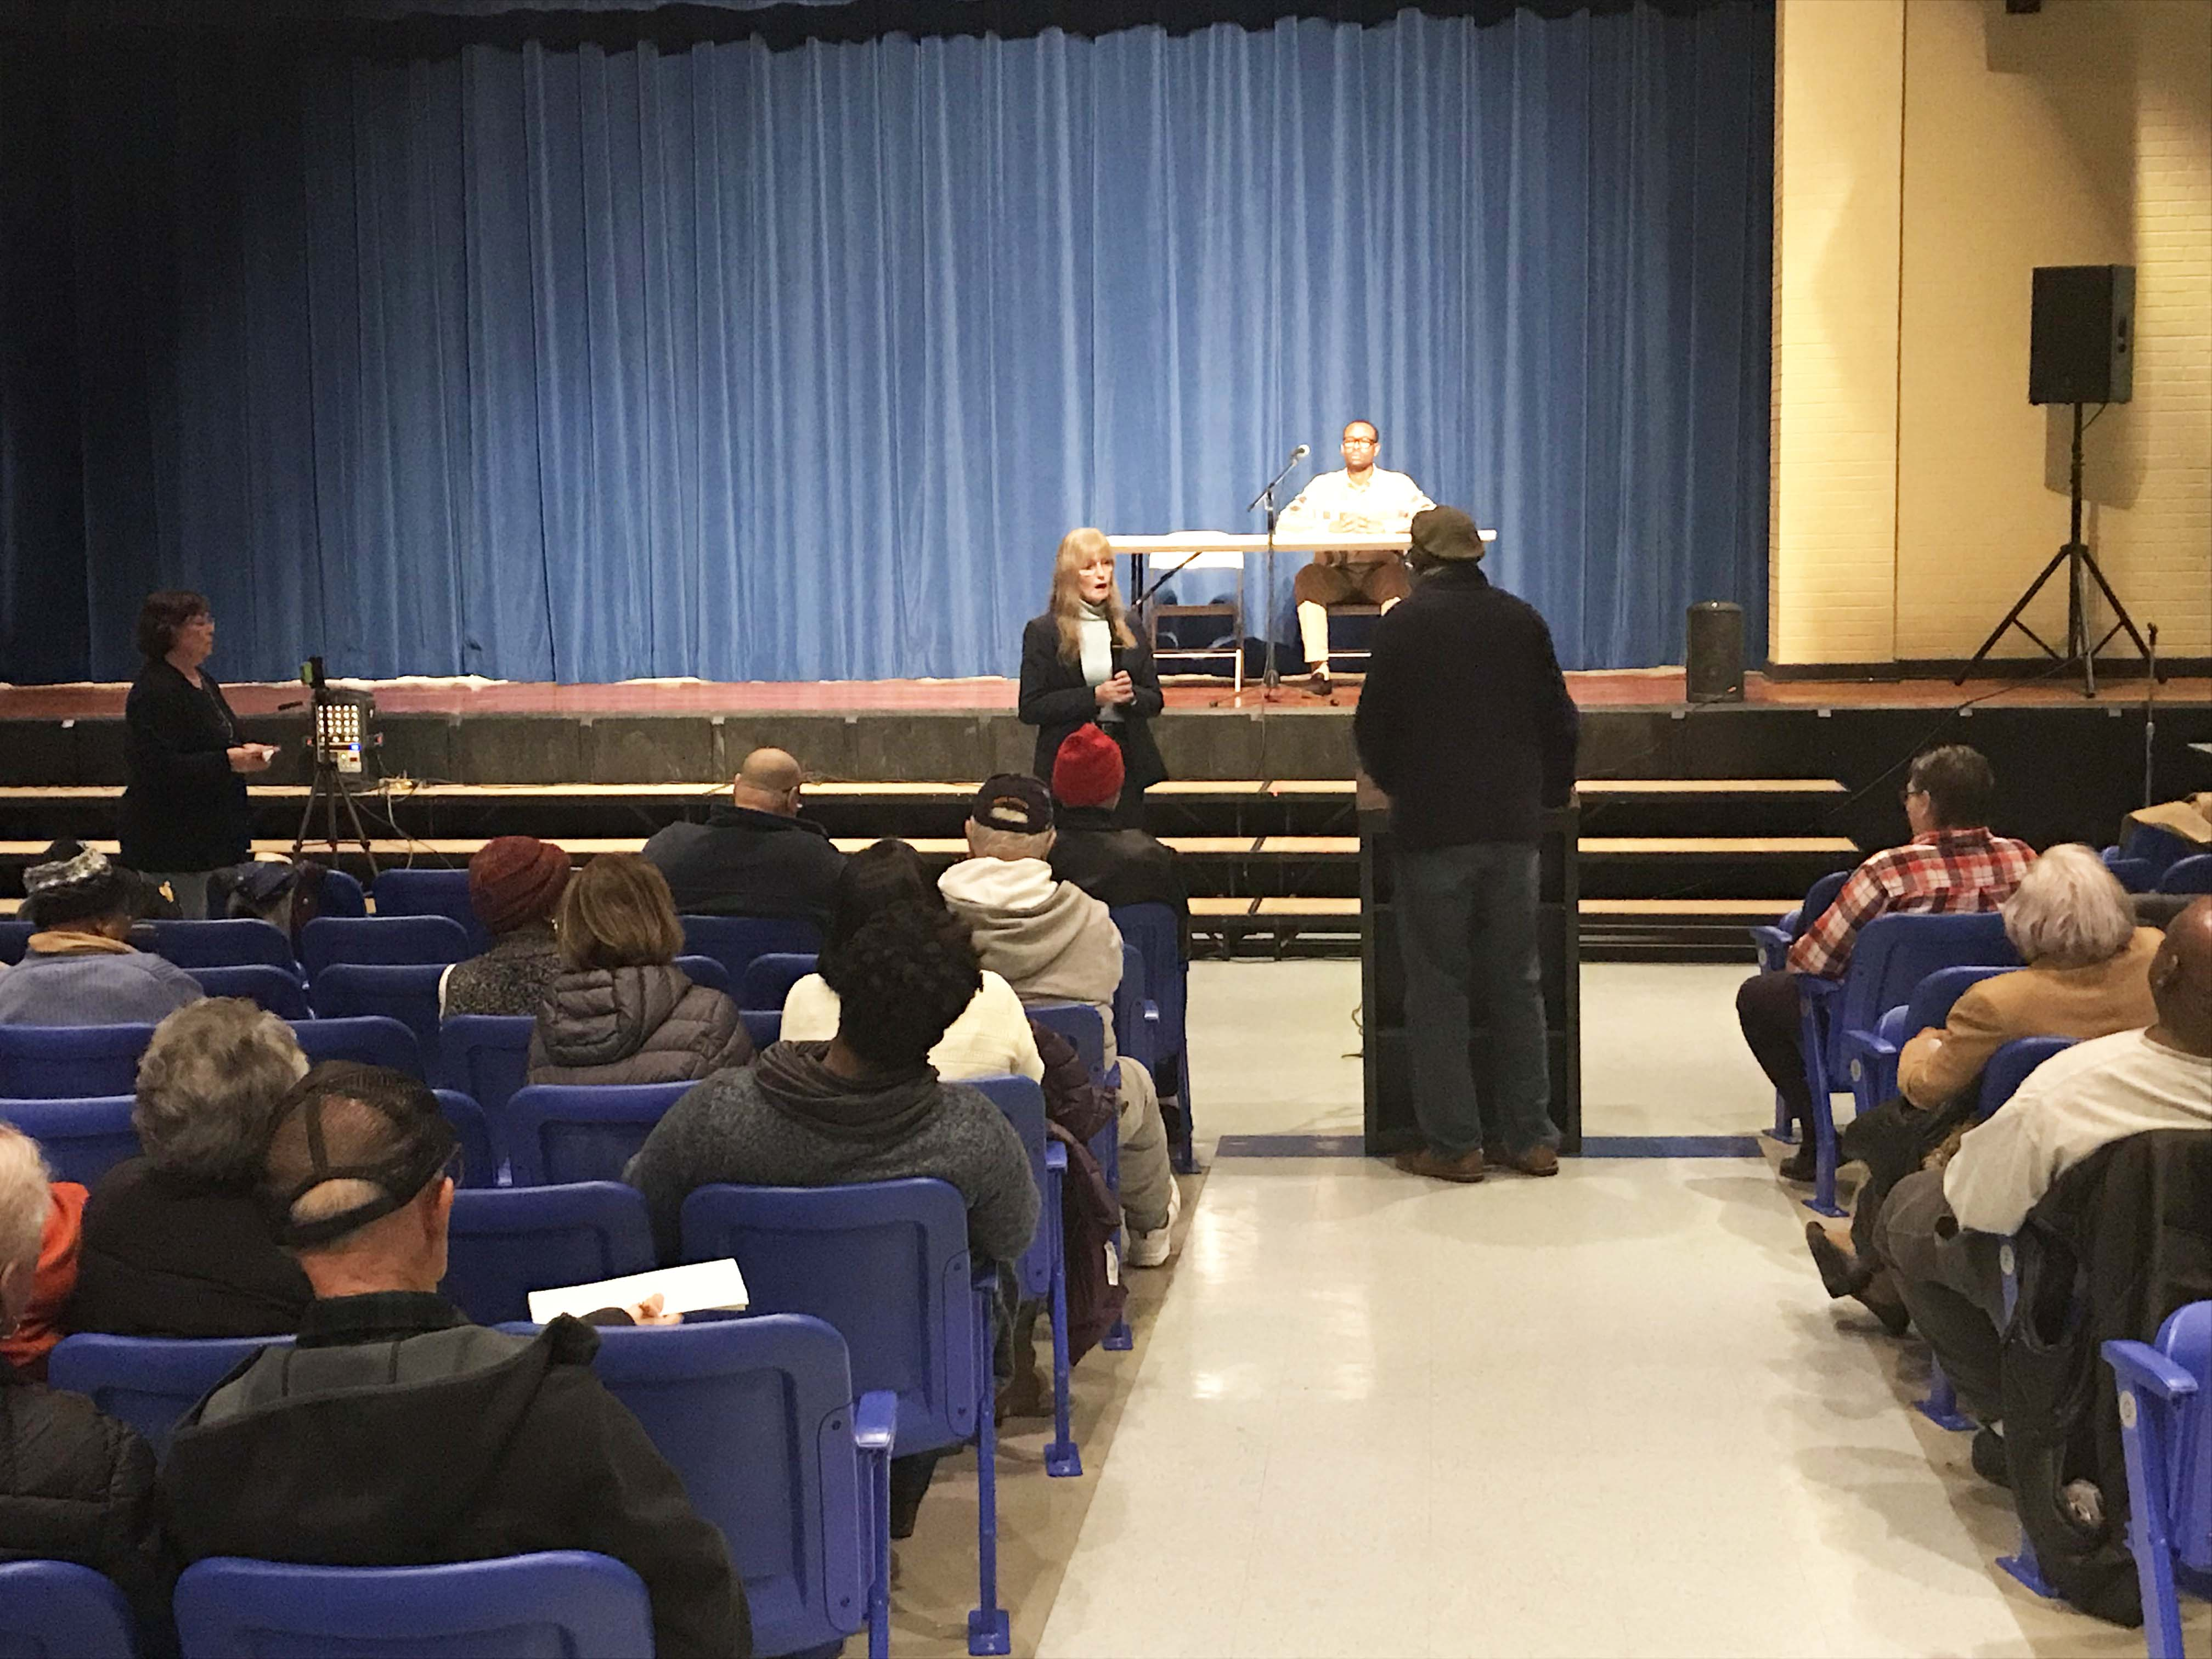 Taxes main concern of Allingtown session